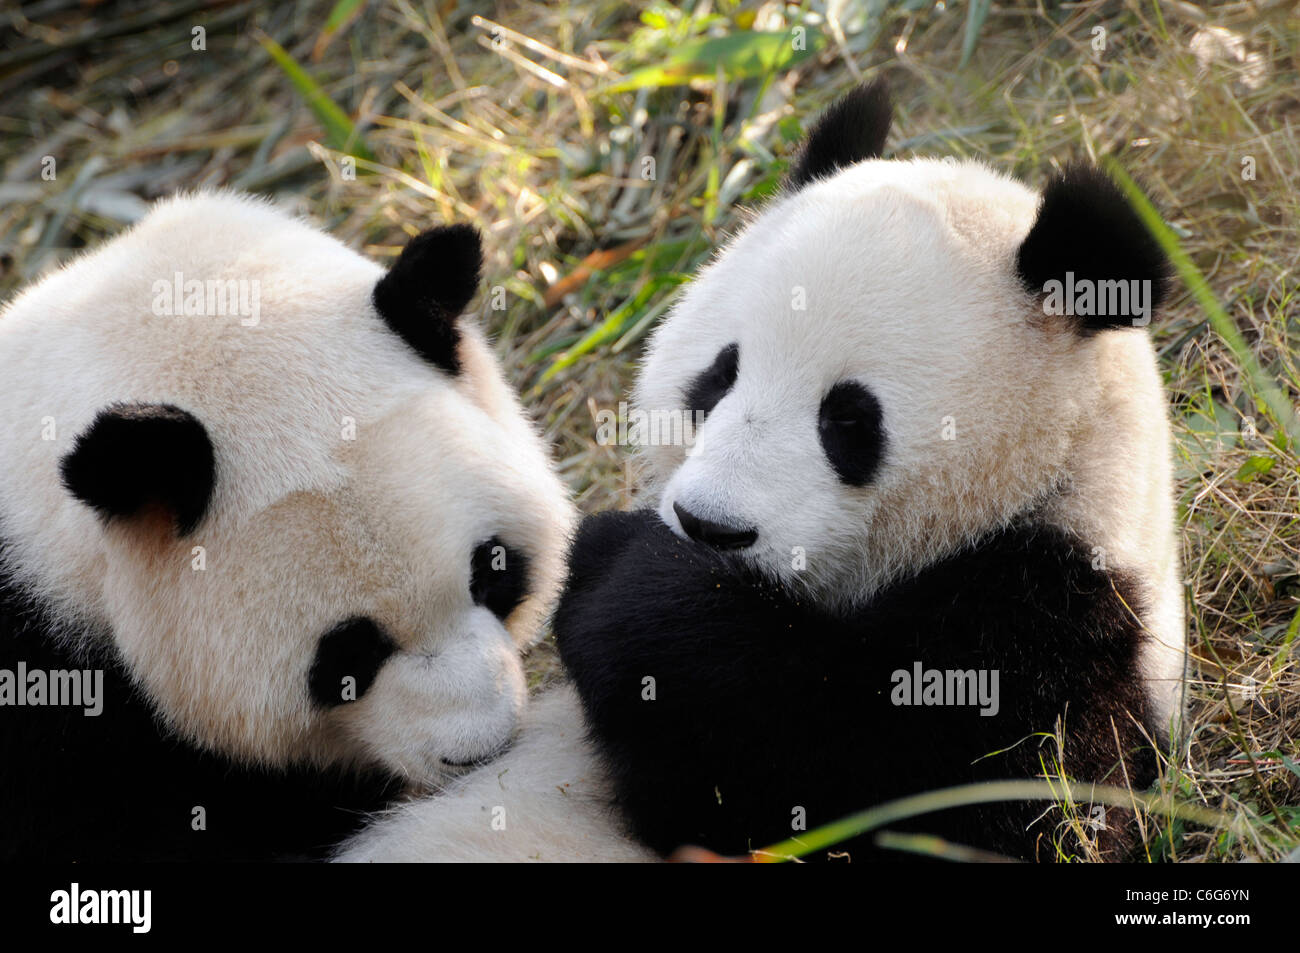 Two sub-adult Giant pandas (Ailuropoda melanoleuca),  Sichuan province, China Stock Photo